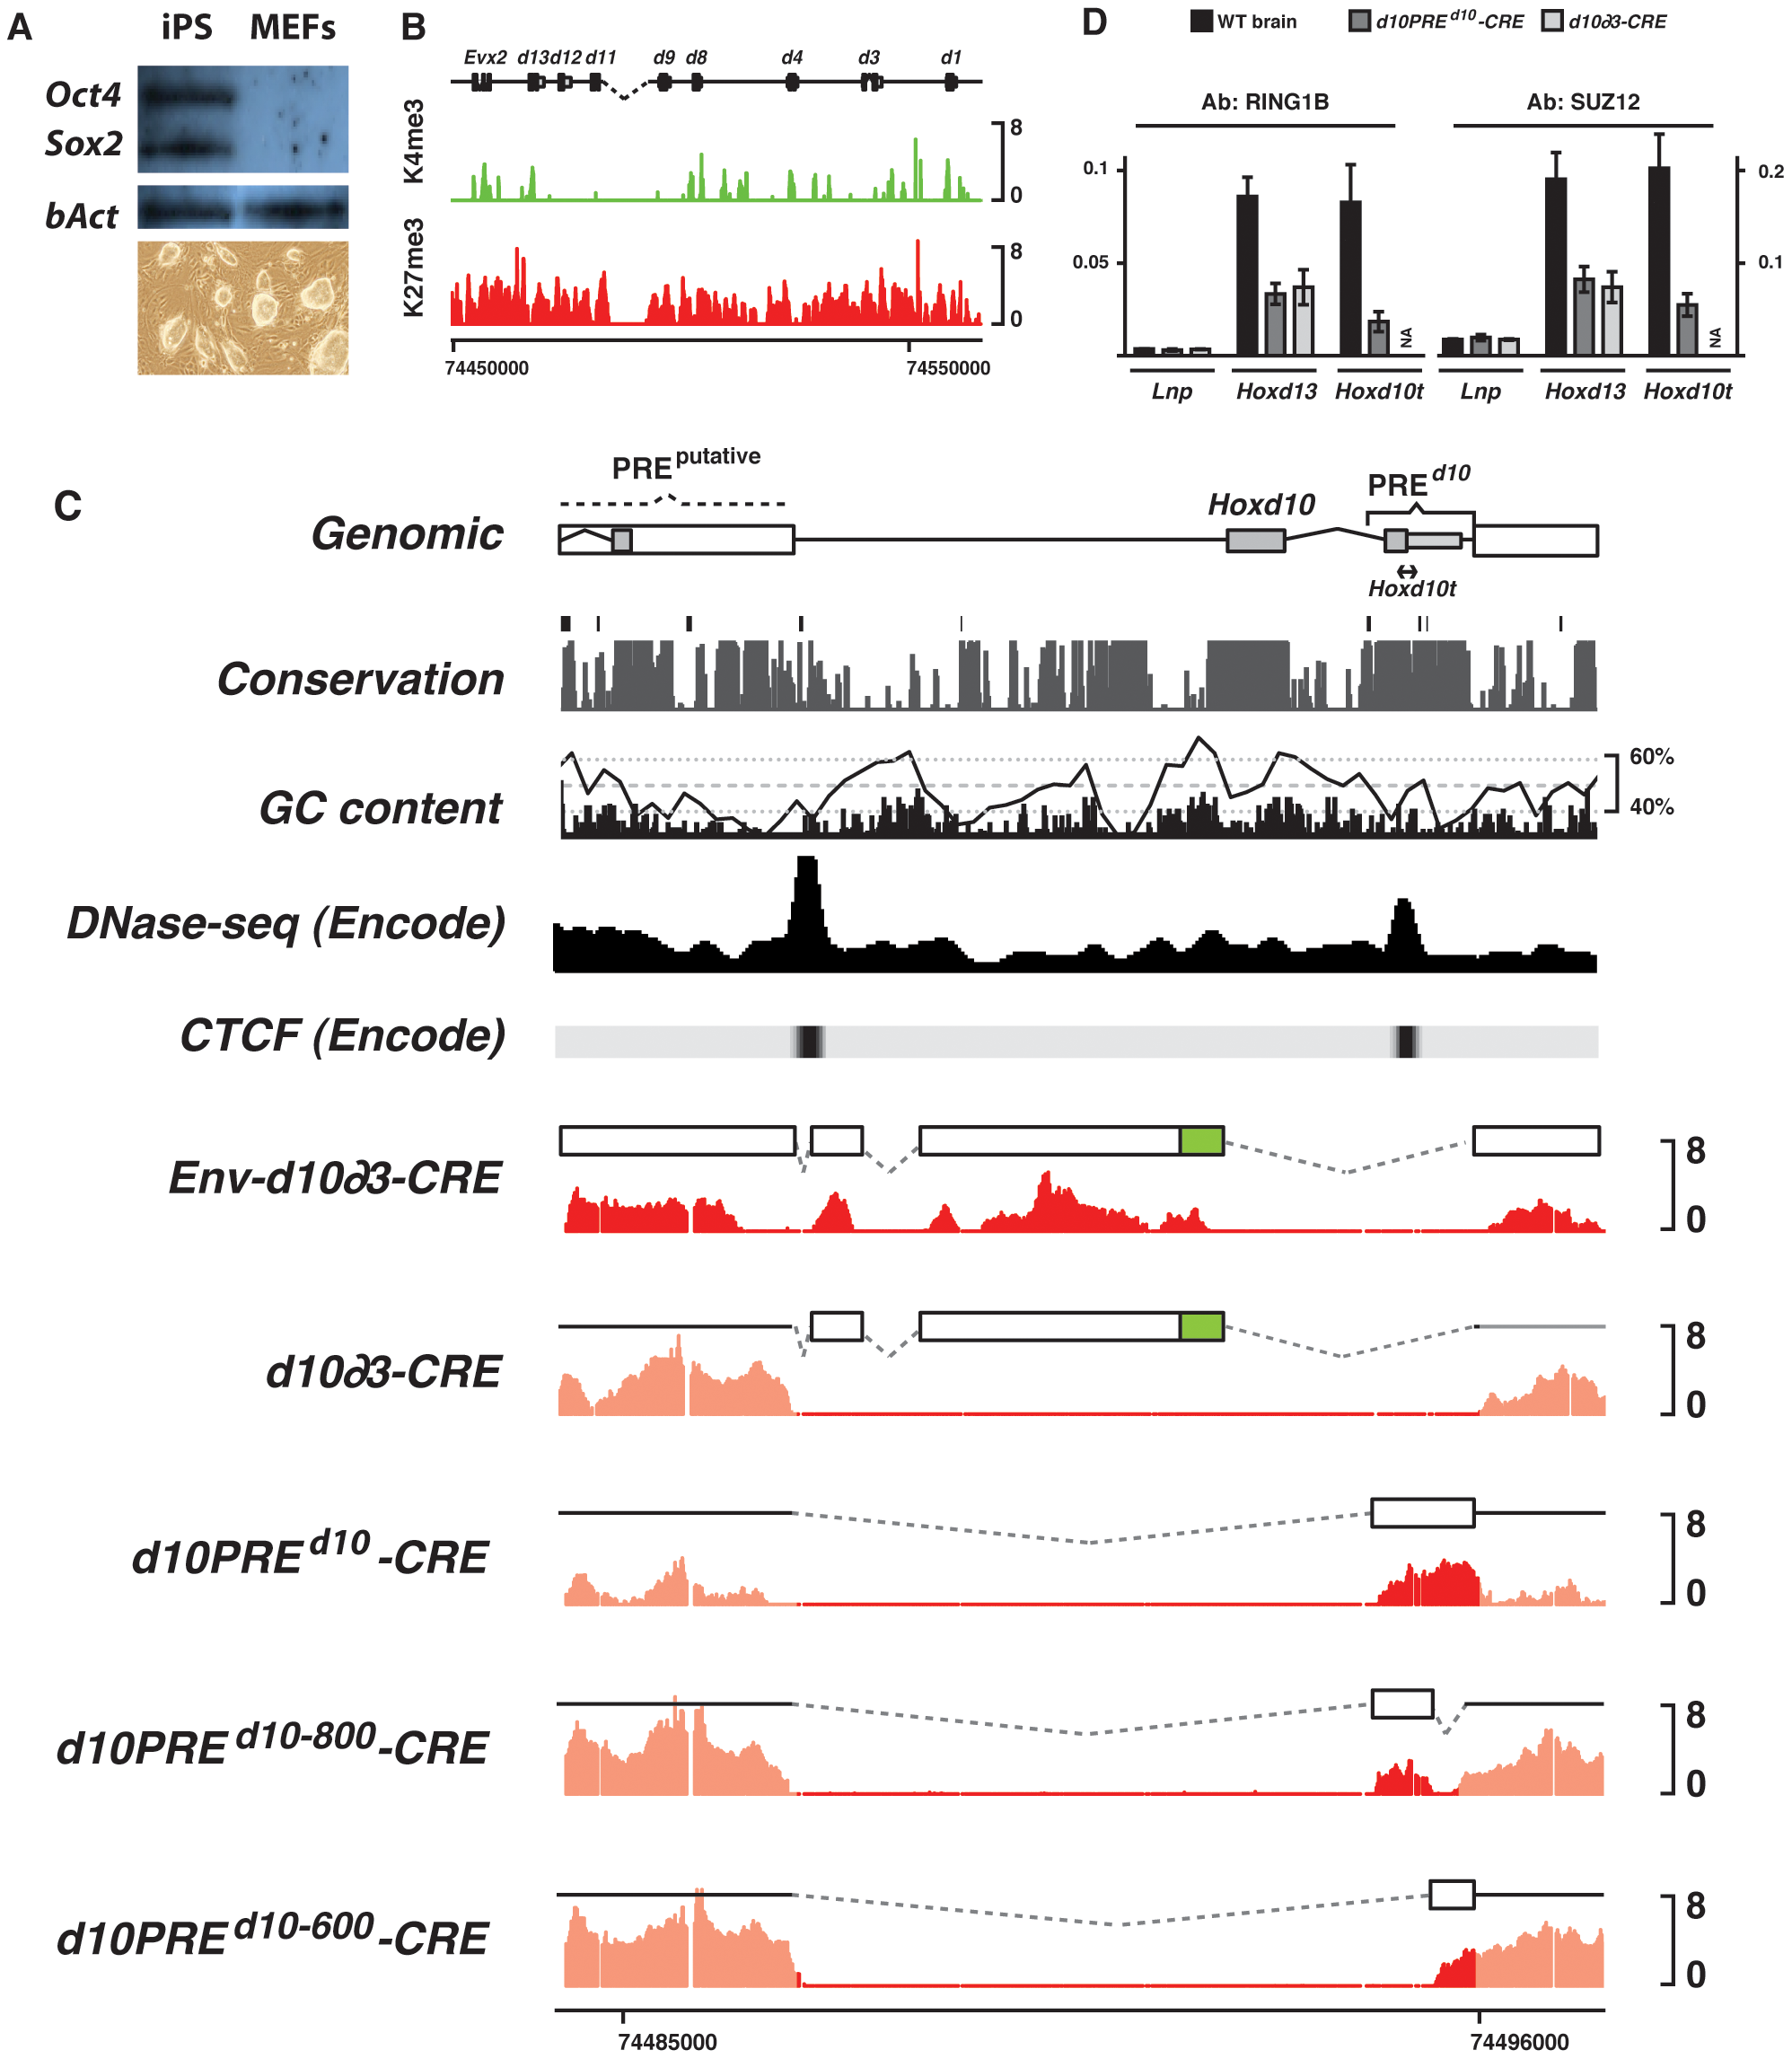 H3K27me3 profiles of transgenic constructs in iPS cells.